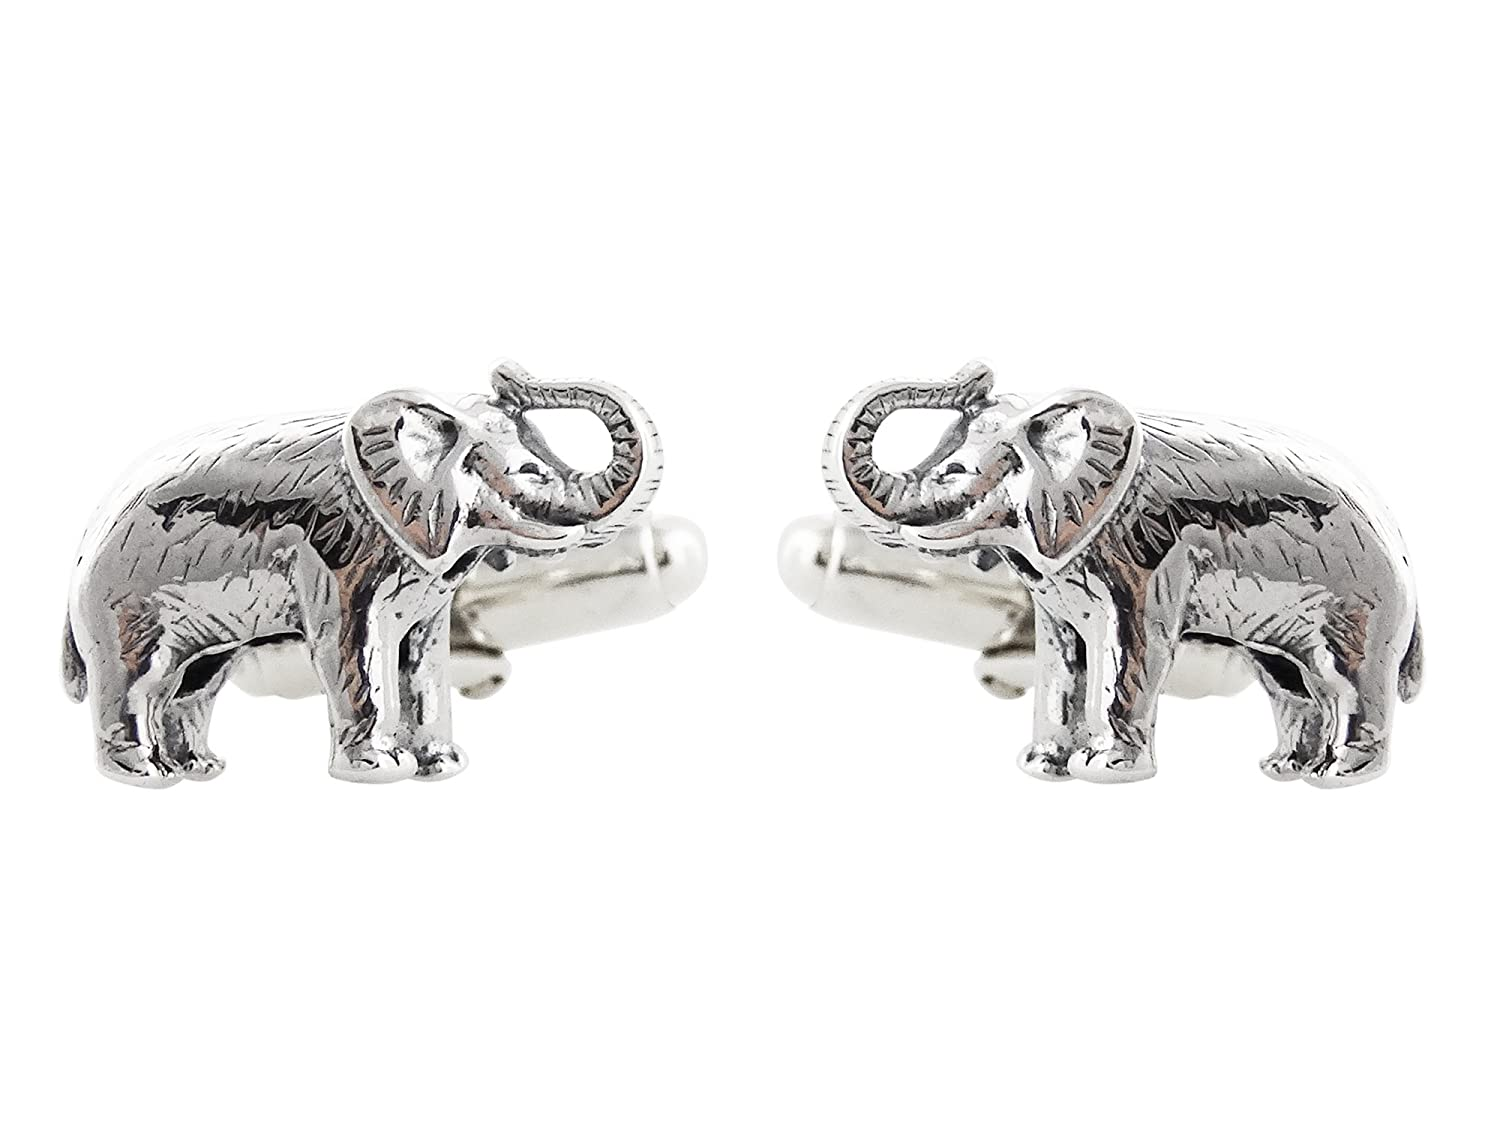 f1be367be6ac1 Amazon.com: Men's Elephant Cuff Links - 925 Sterling Silver, 1 Pair ...